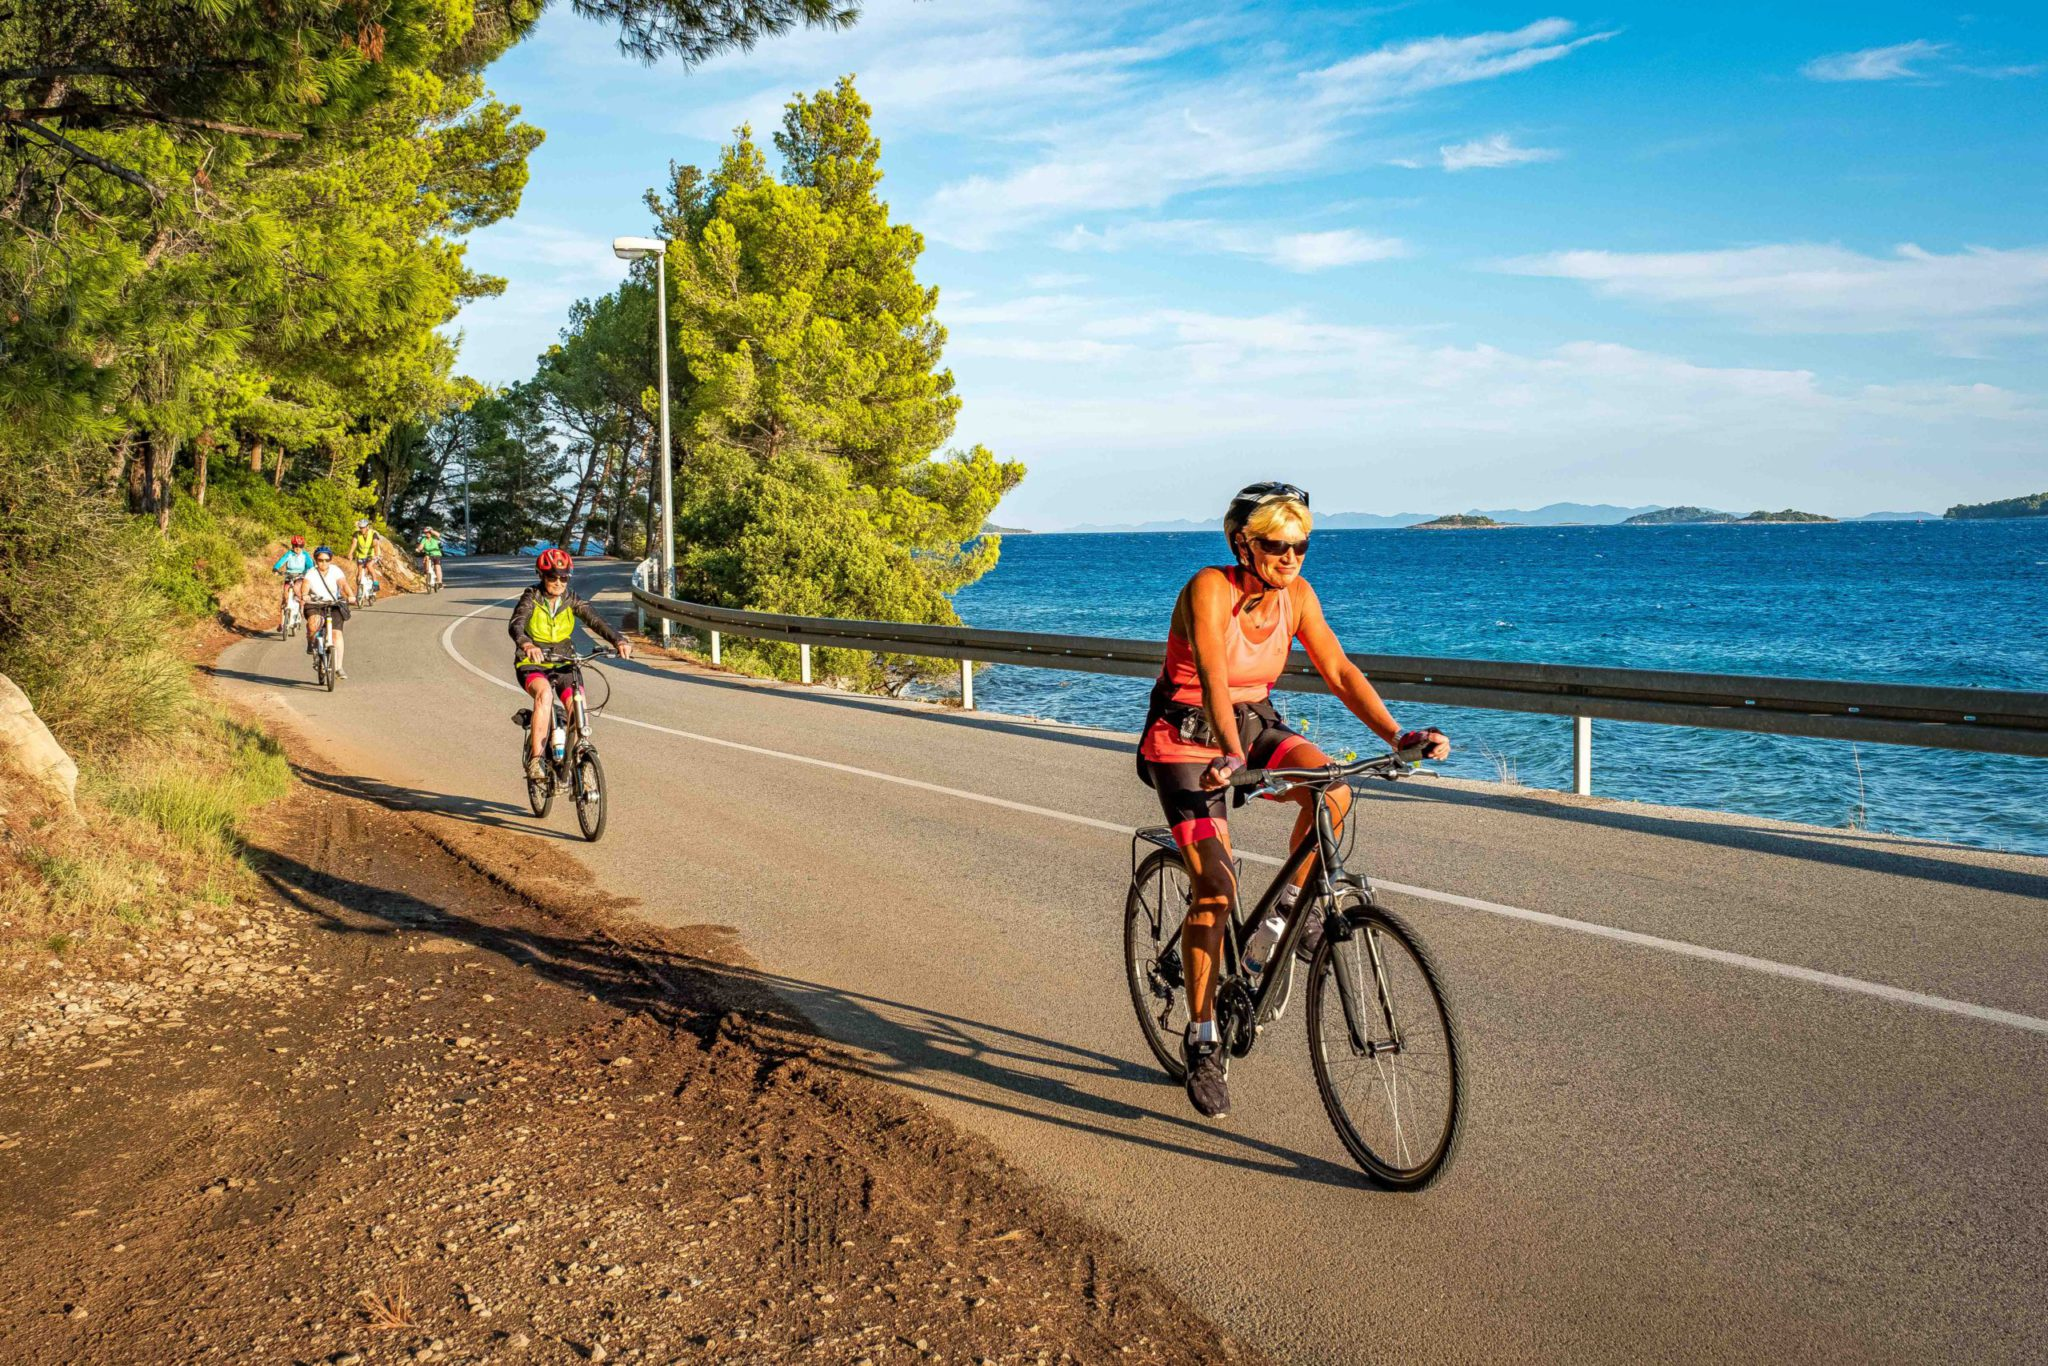 Guided Sail & Cycle Croatia: 7 Day Dubrovnik to Split Tour